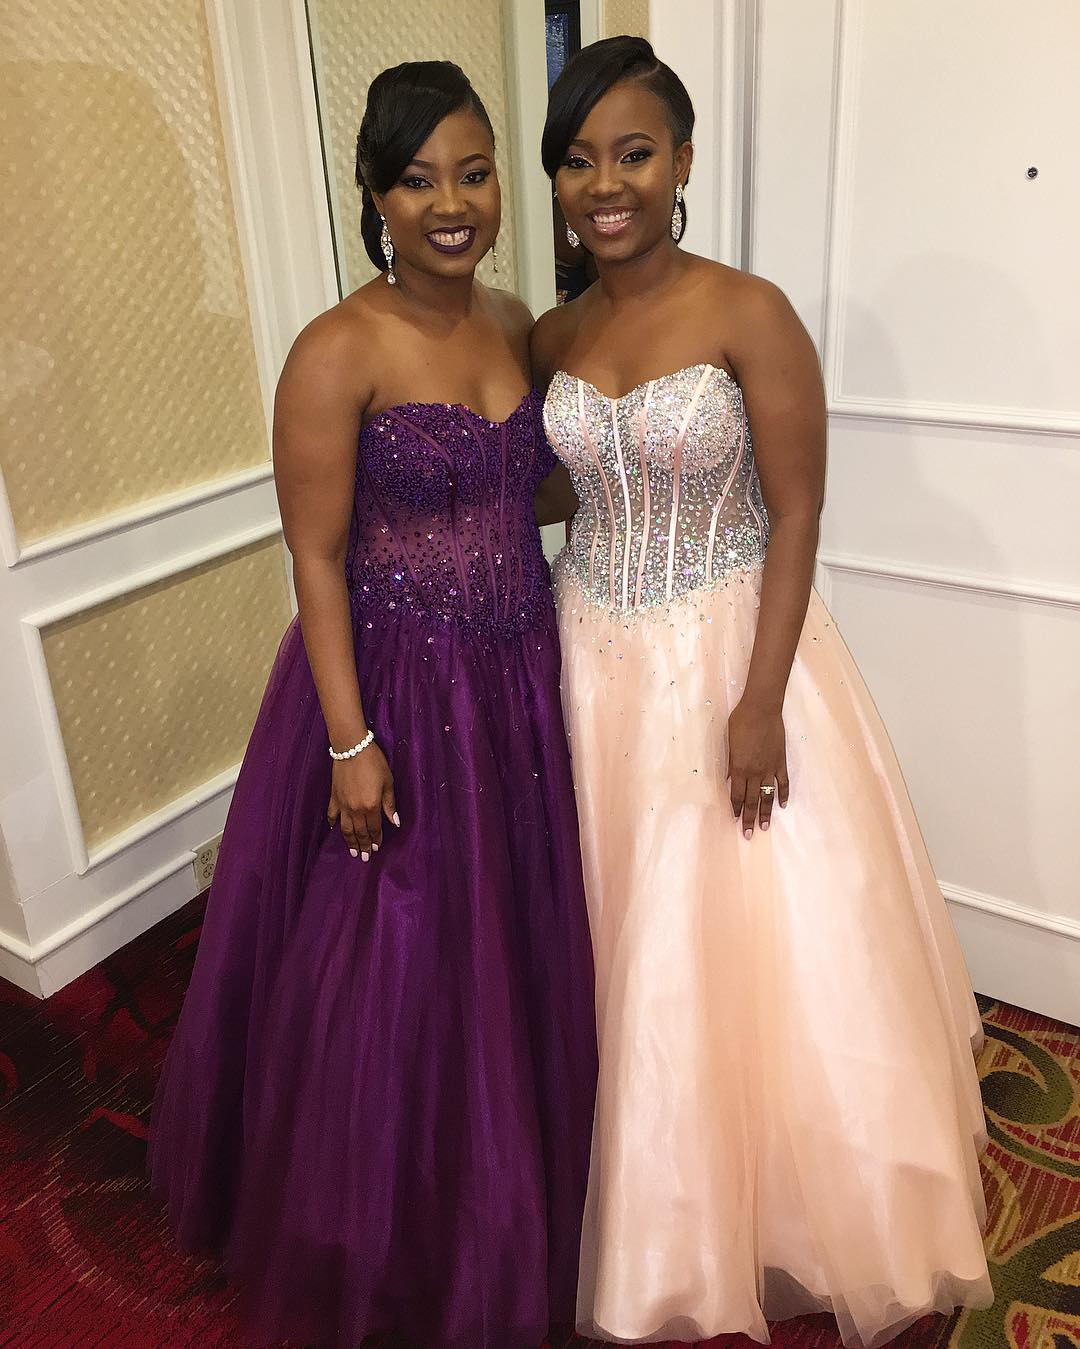 What do you think about having a double wedding kamdora there are several pros to having a double wedding and there are cons as well a major benefit of double weddings is the shared cost junglespirit Gallery